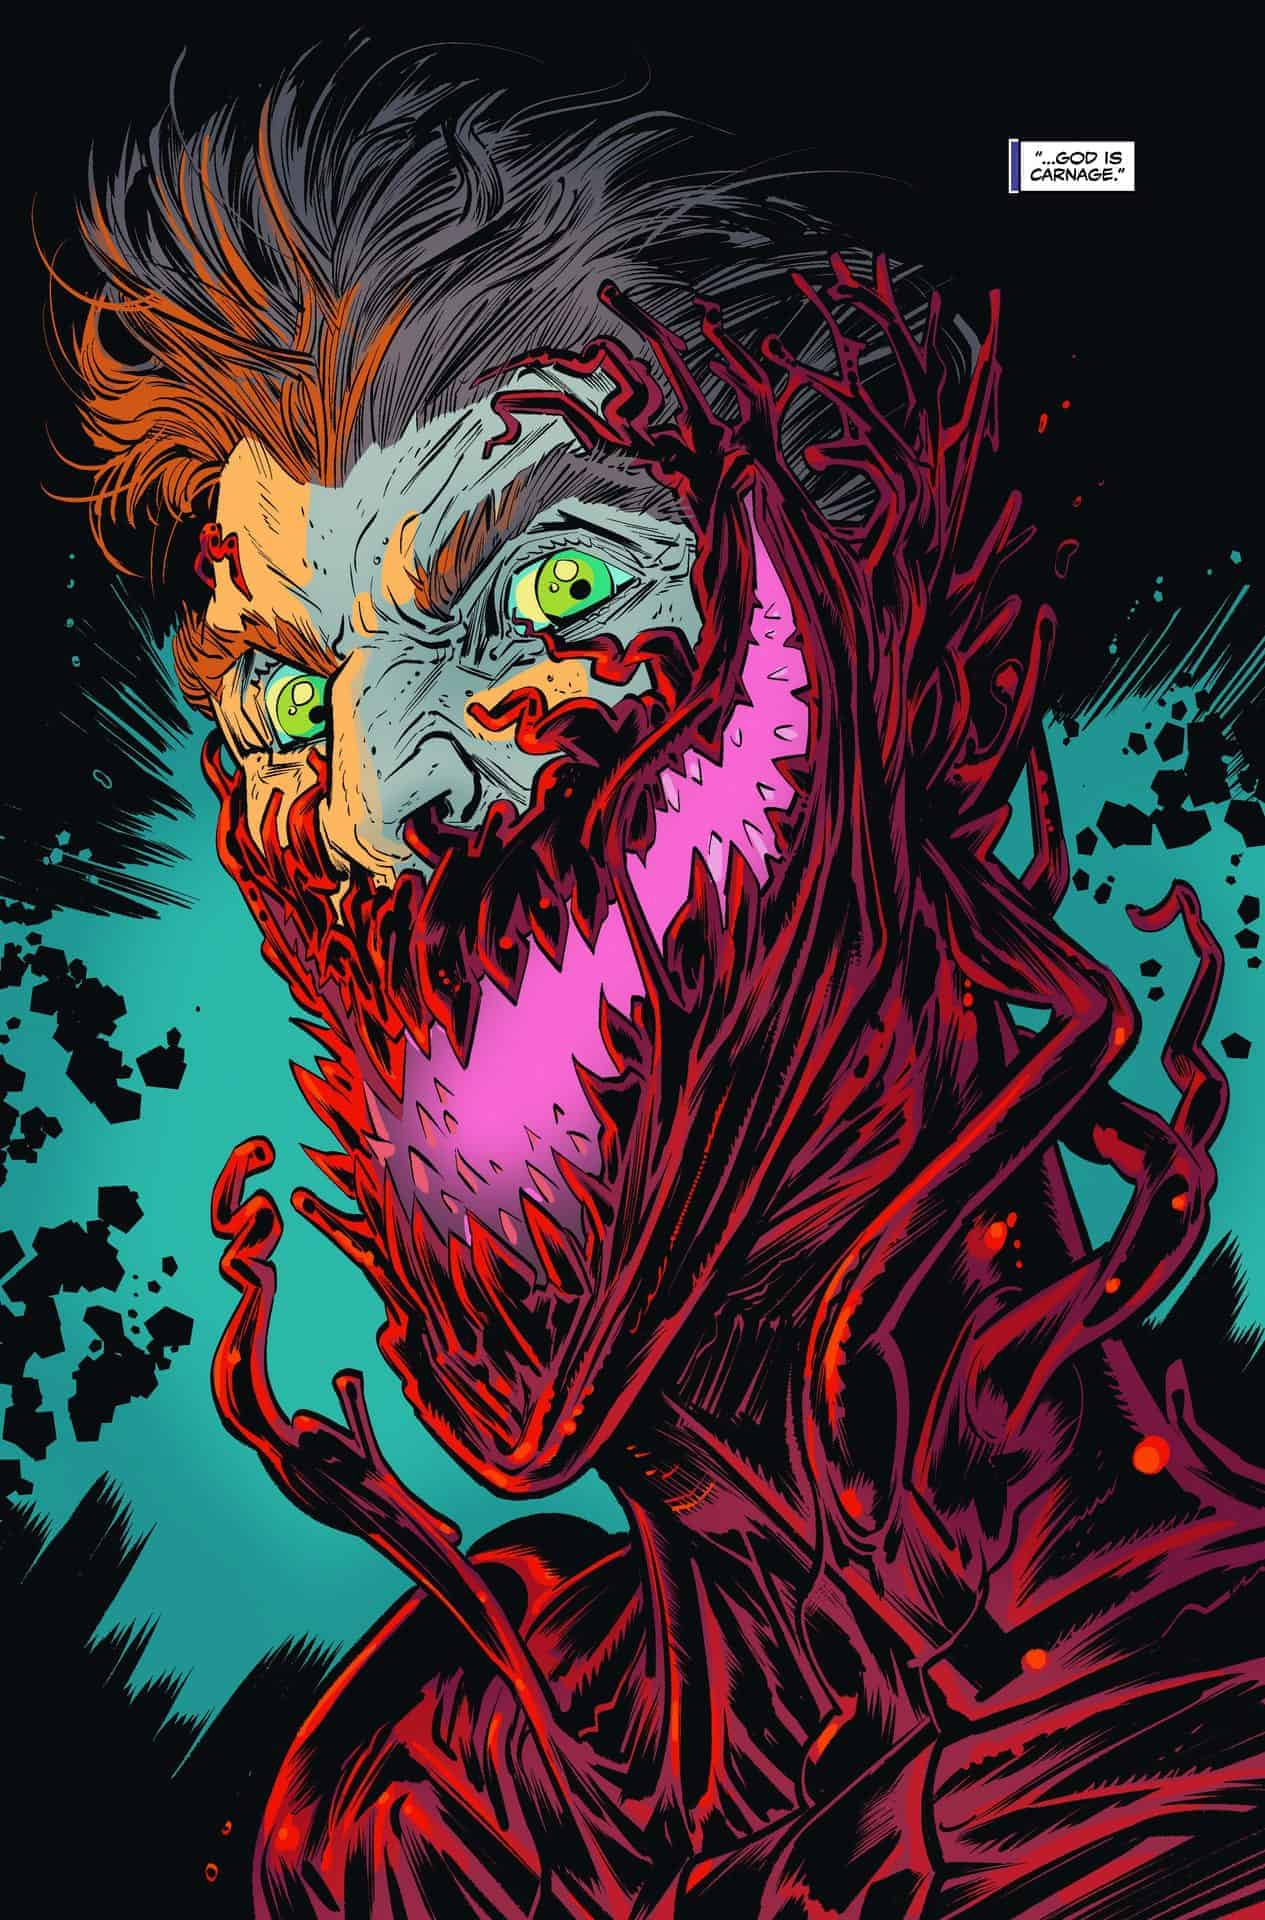 Web of Venom Carnage #1